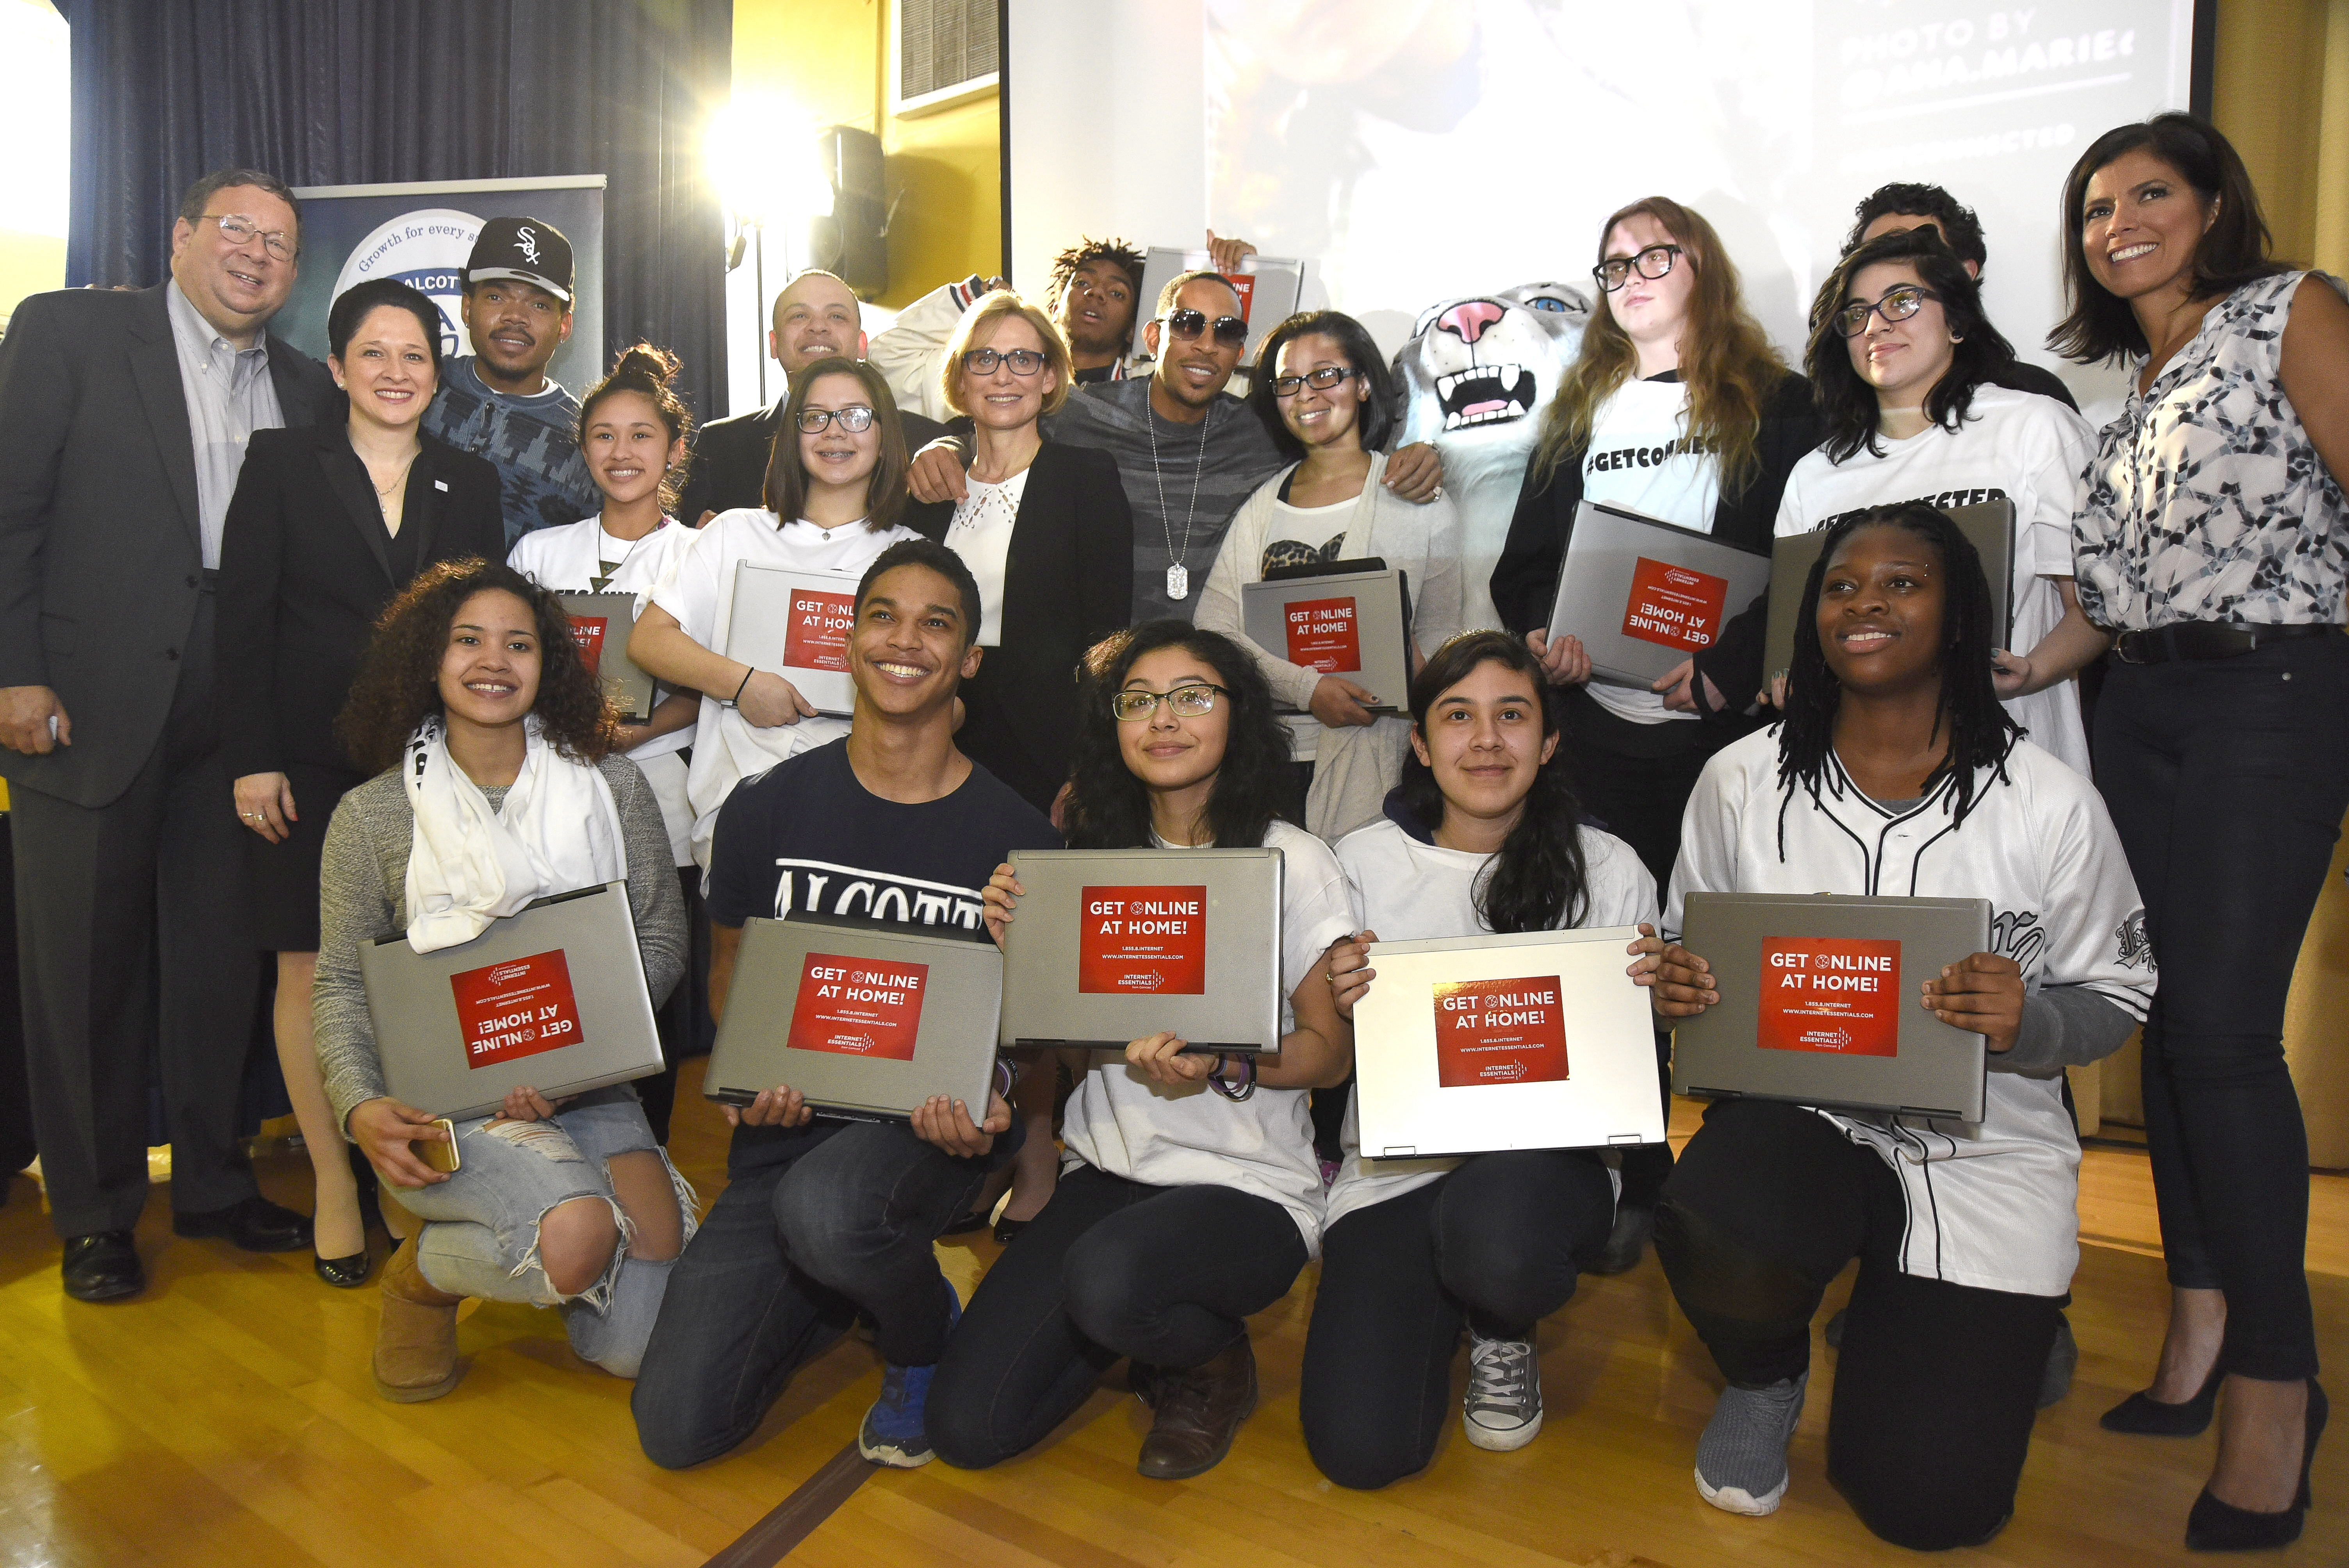 Chance the rapper ludacris launch get schooled get connected chance the rapper and ludacris joined internet essentials city and school leaders at alcott college prep on tuesday afternoon to kick off the popular get kristyandbryce Images